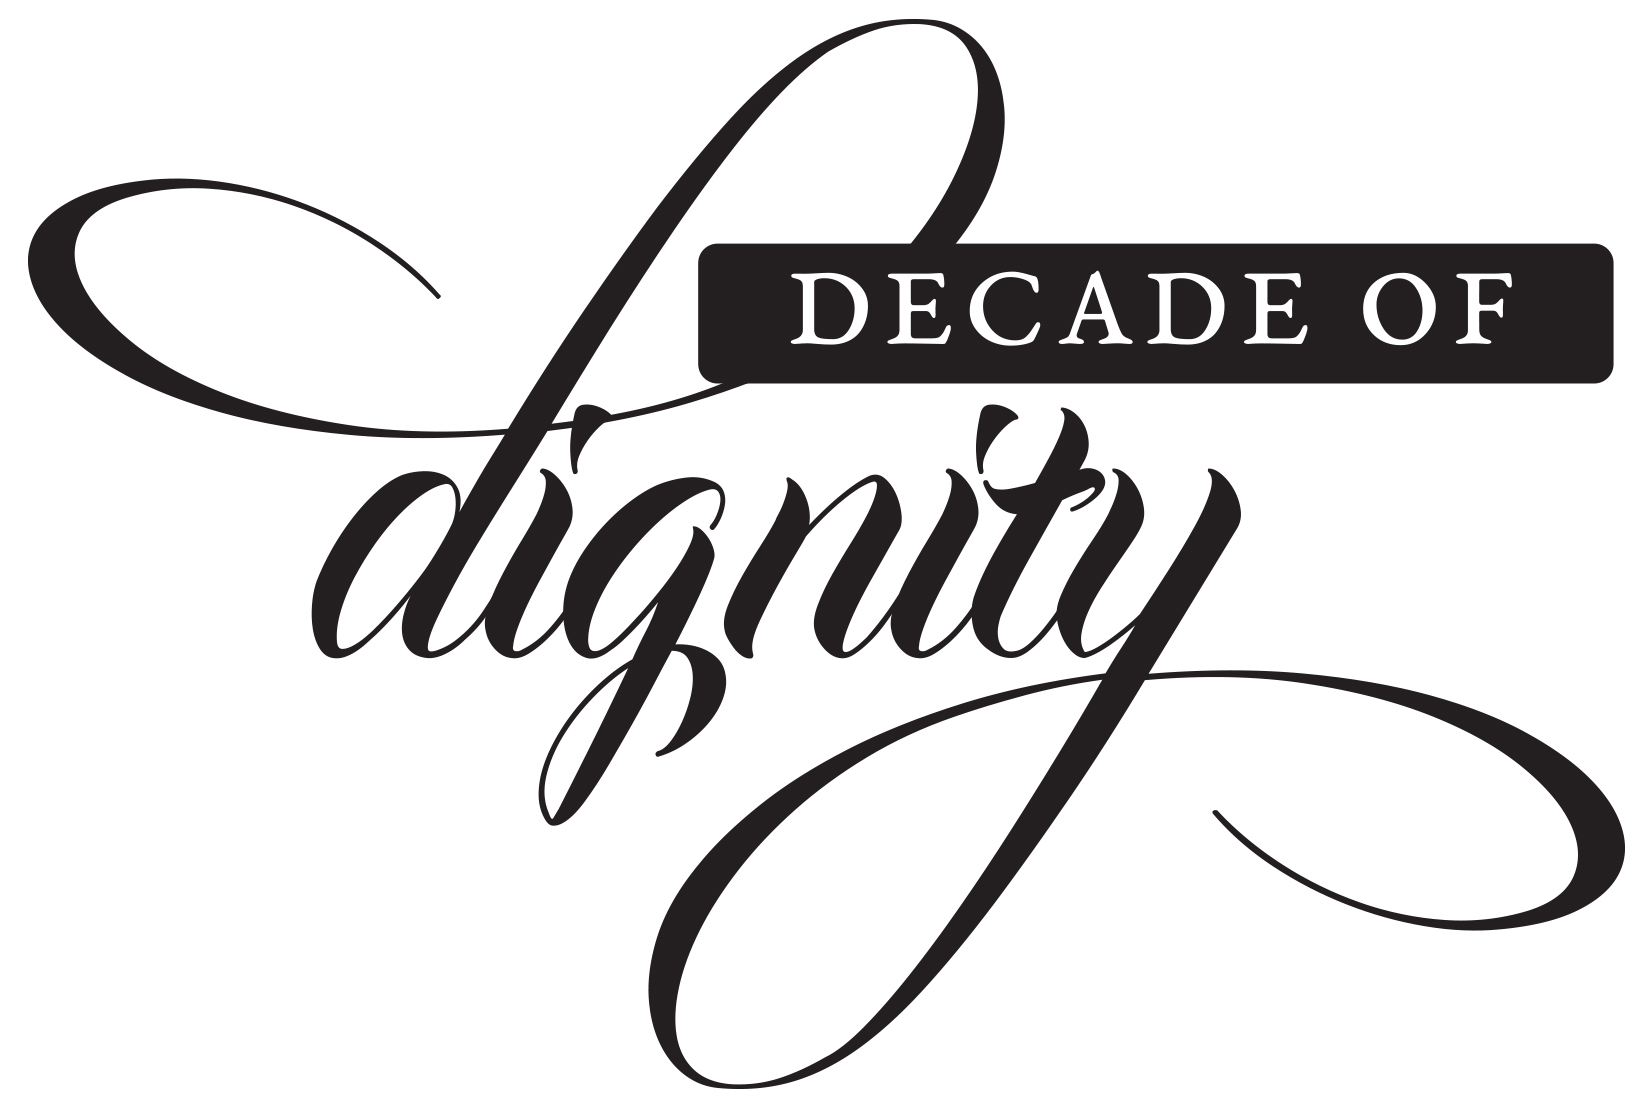 Decade of Dignity logo-FINAL_0.jpg